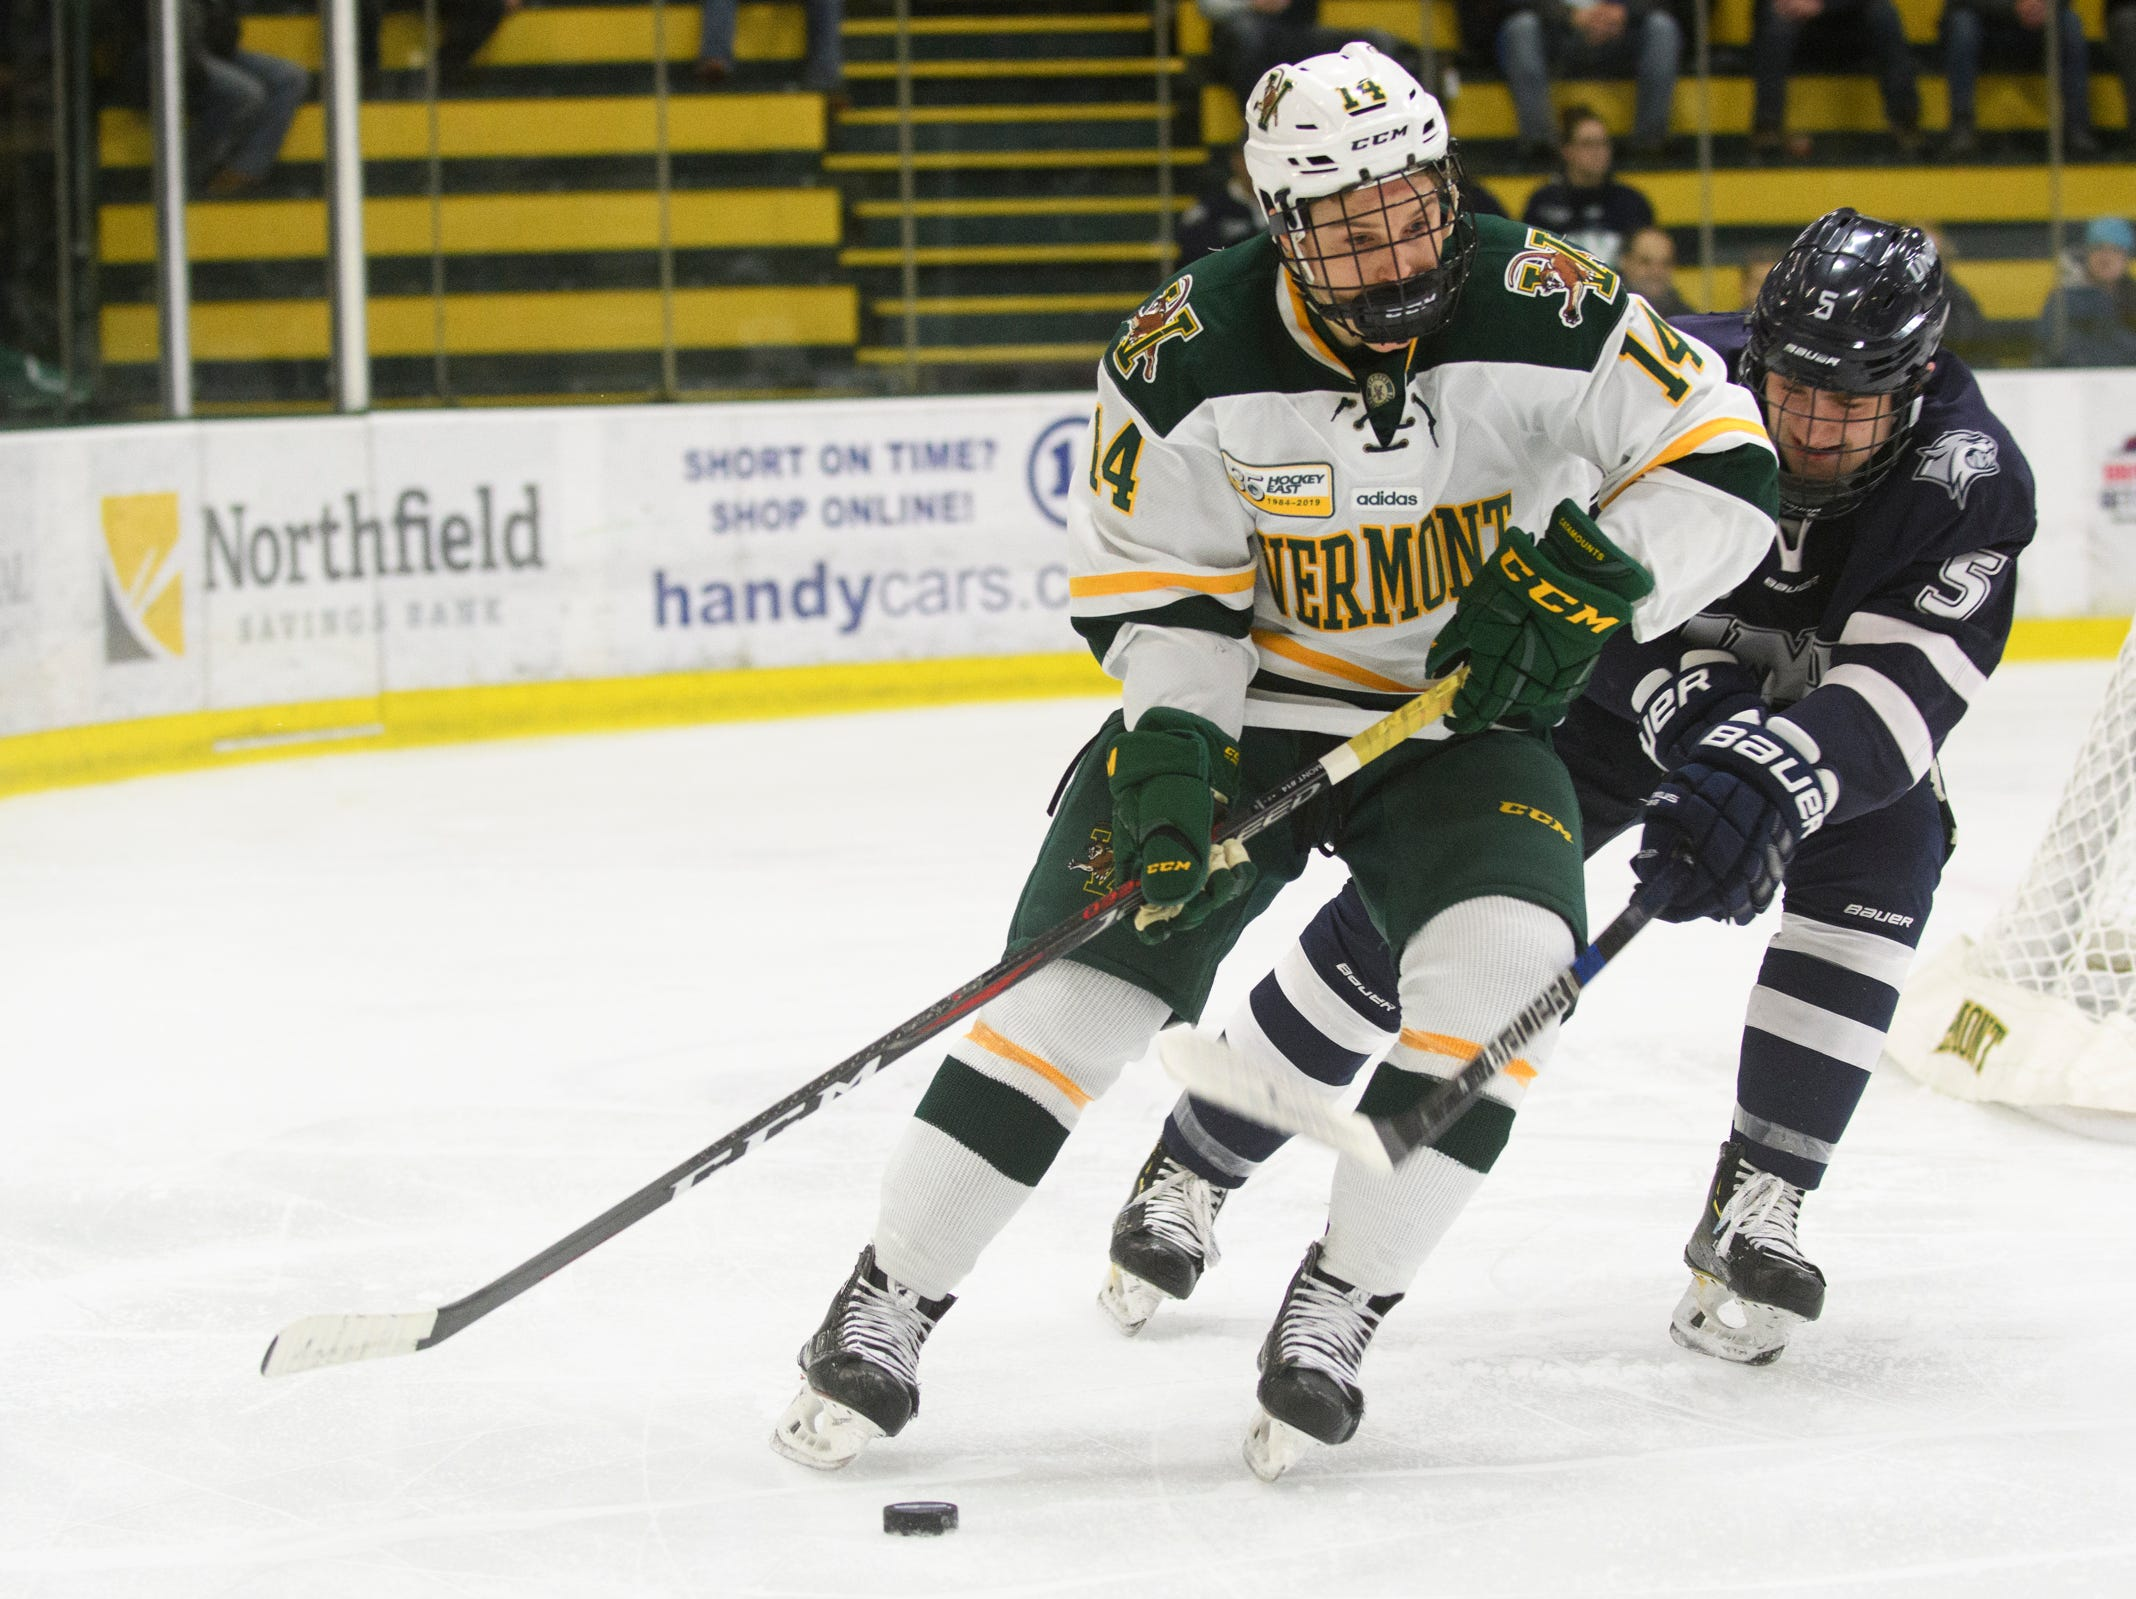 Vermont forward Ace Cowans (14) skates with the puck past New Hampshire's Will McKinnon (5) during the men's hockey game between the New Hampshire Wildcats and the Vermont Catamounts at Gutterson Field House on Friday night February 8, 2019 in Burlington, Vermont.